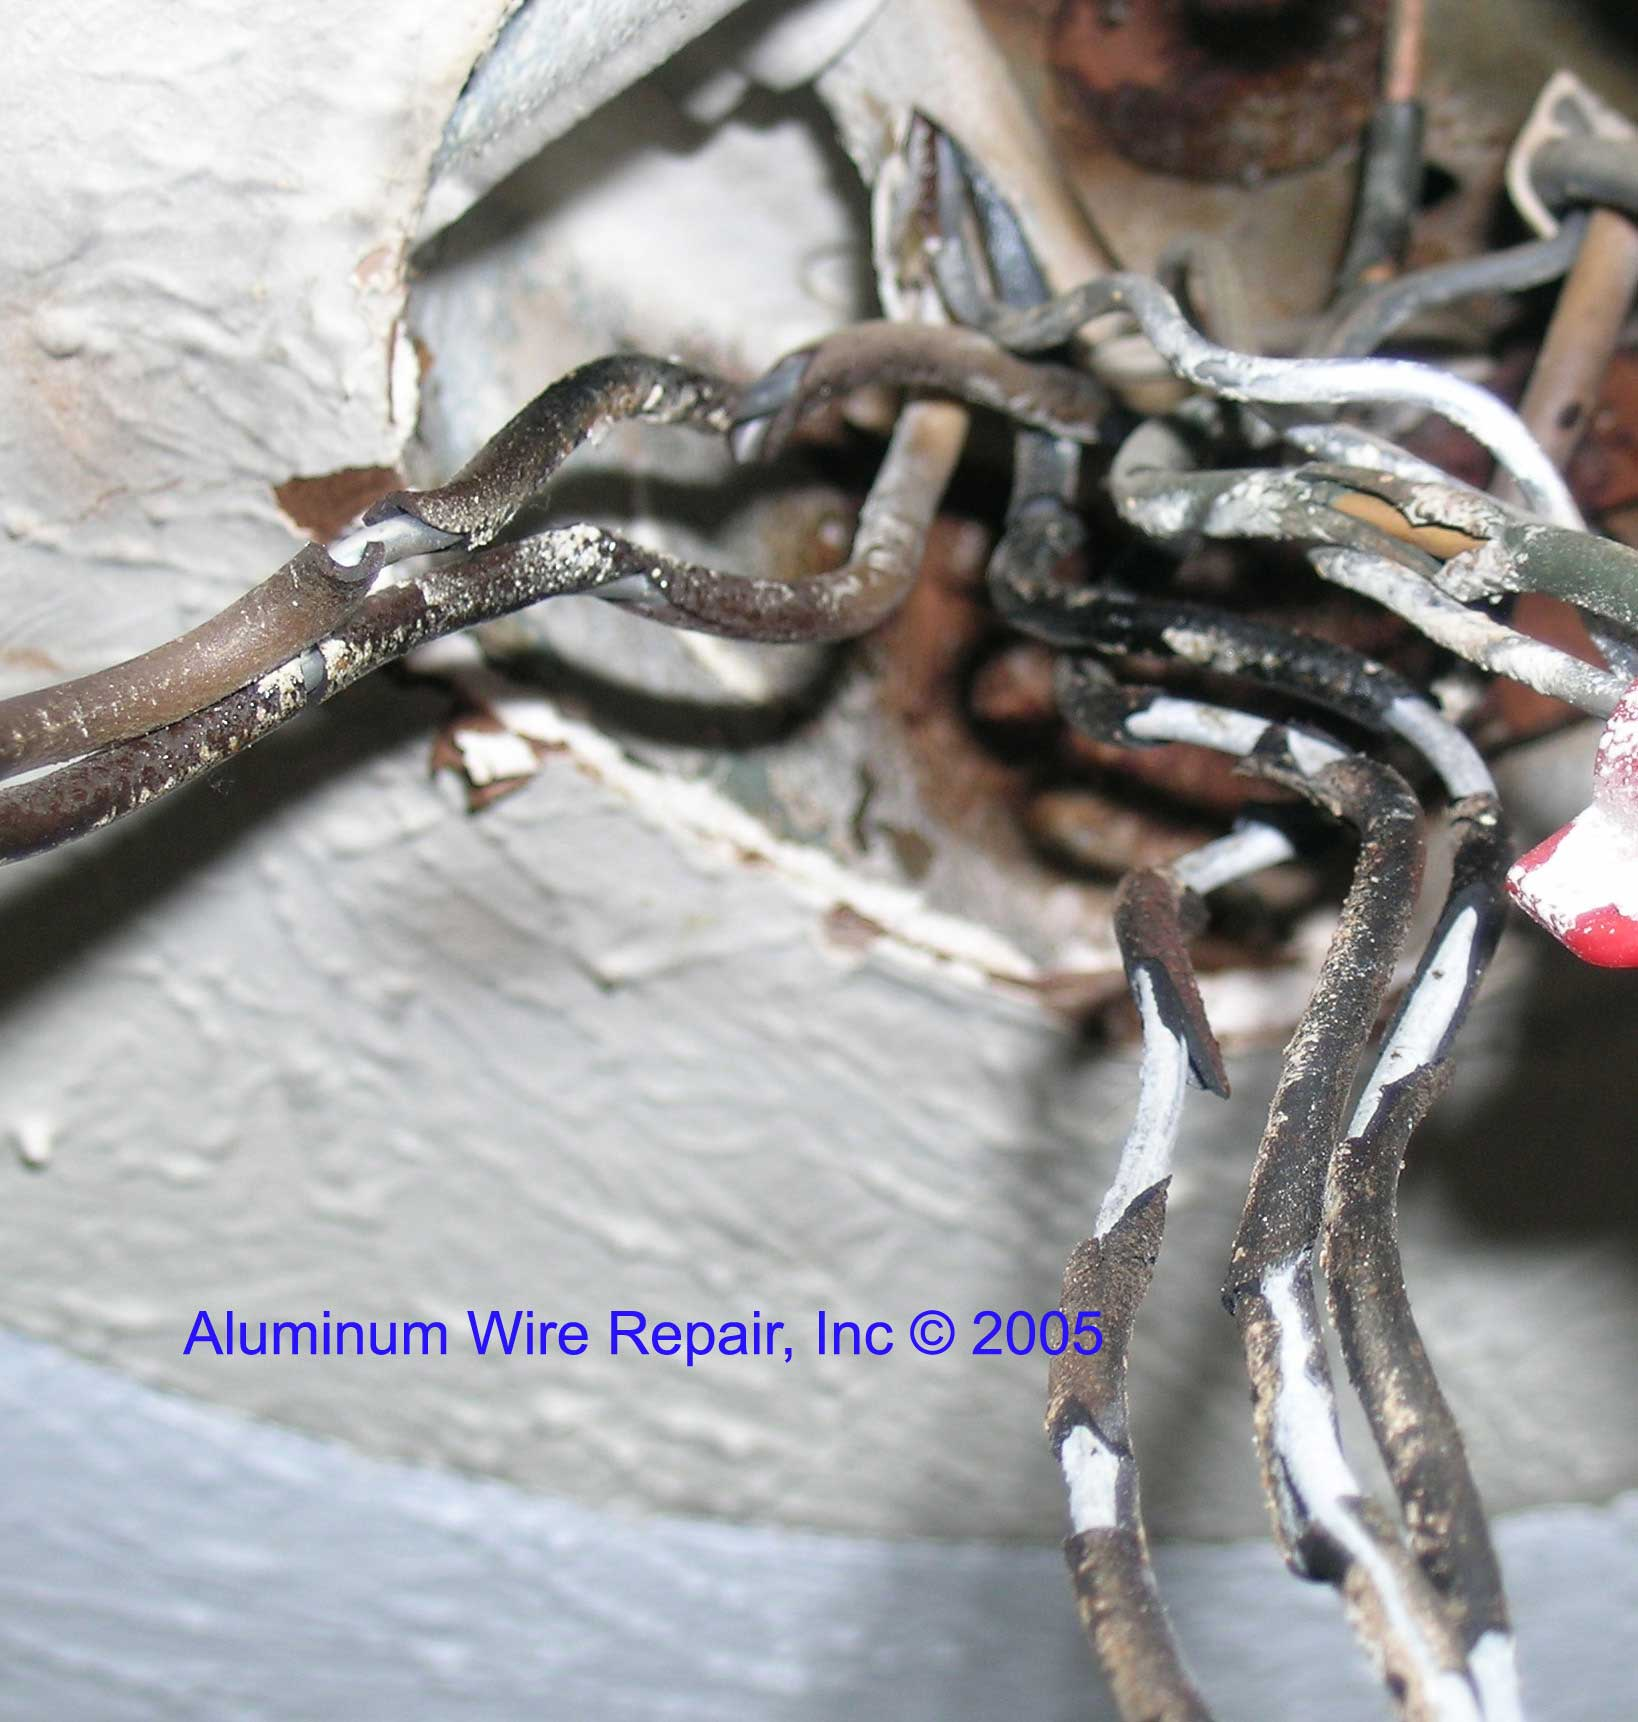 Burnt Wire Nuts Center 20022004 Ford F250 Curt T Connector Wiring Harness 55265 Examples Of Aluminum Repair Inc Rh Alwirerepair Com Almond Peanuts